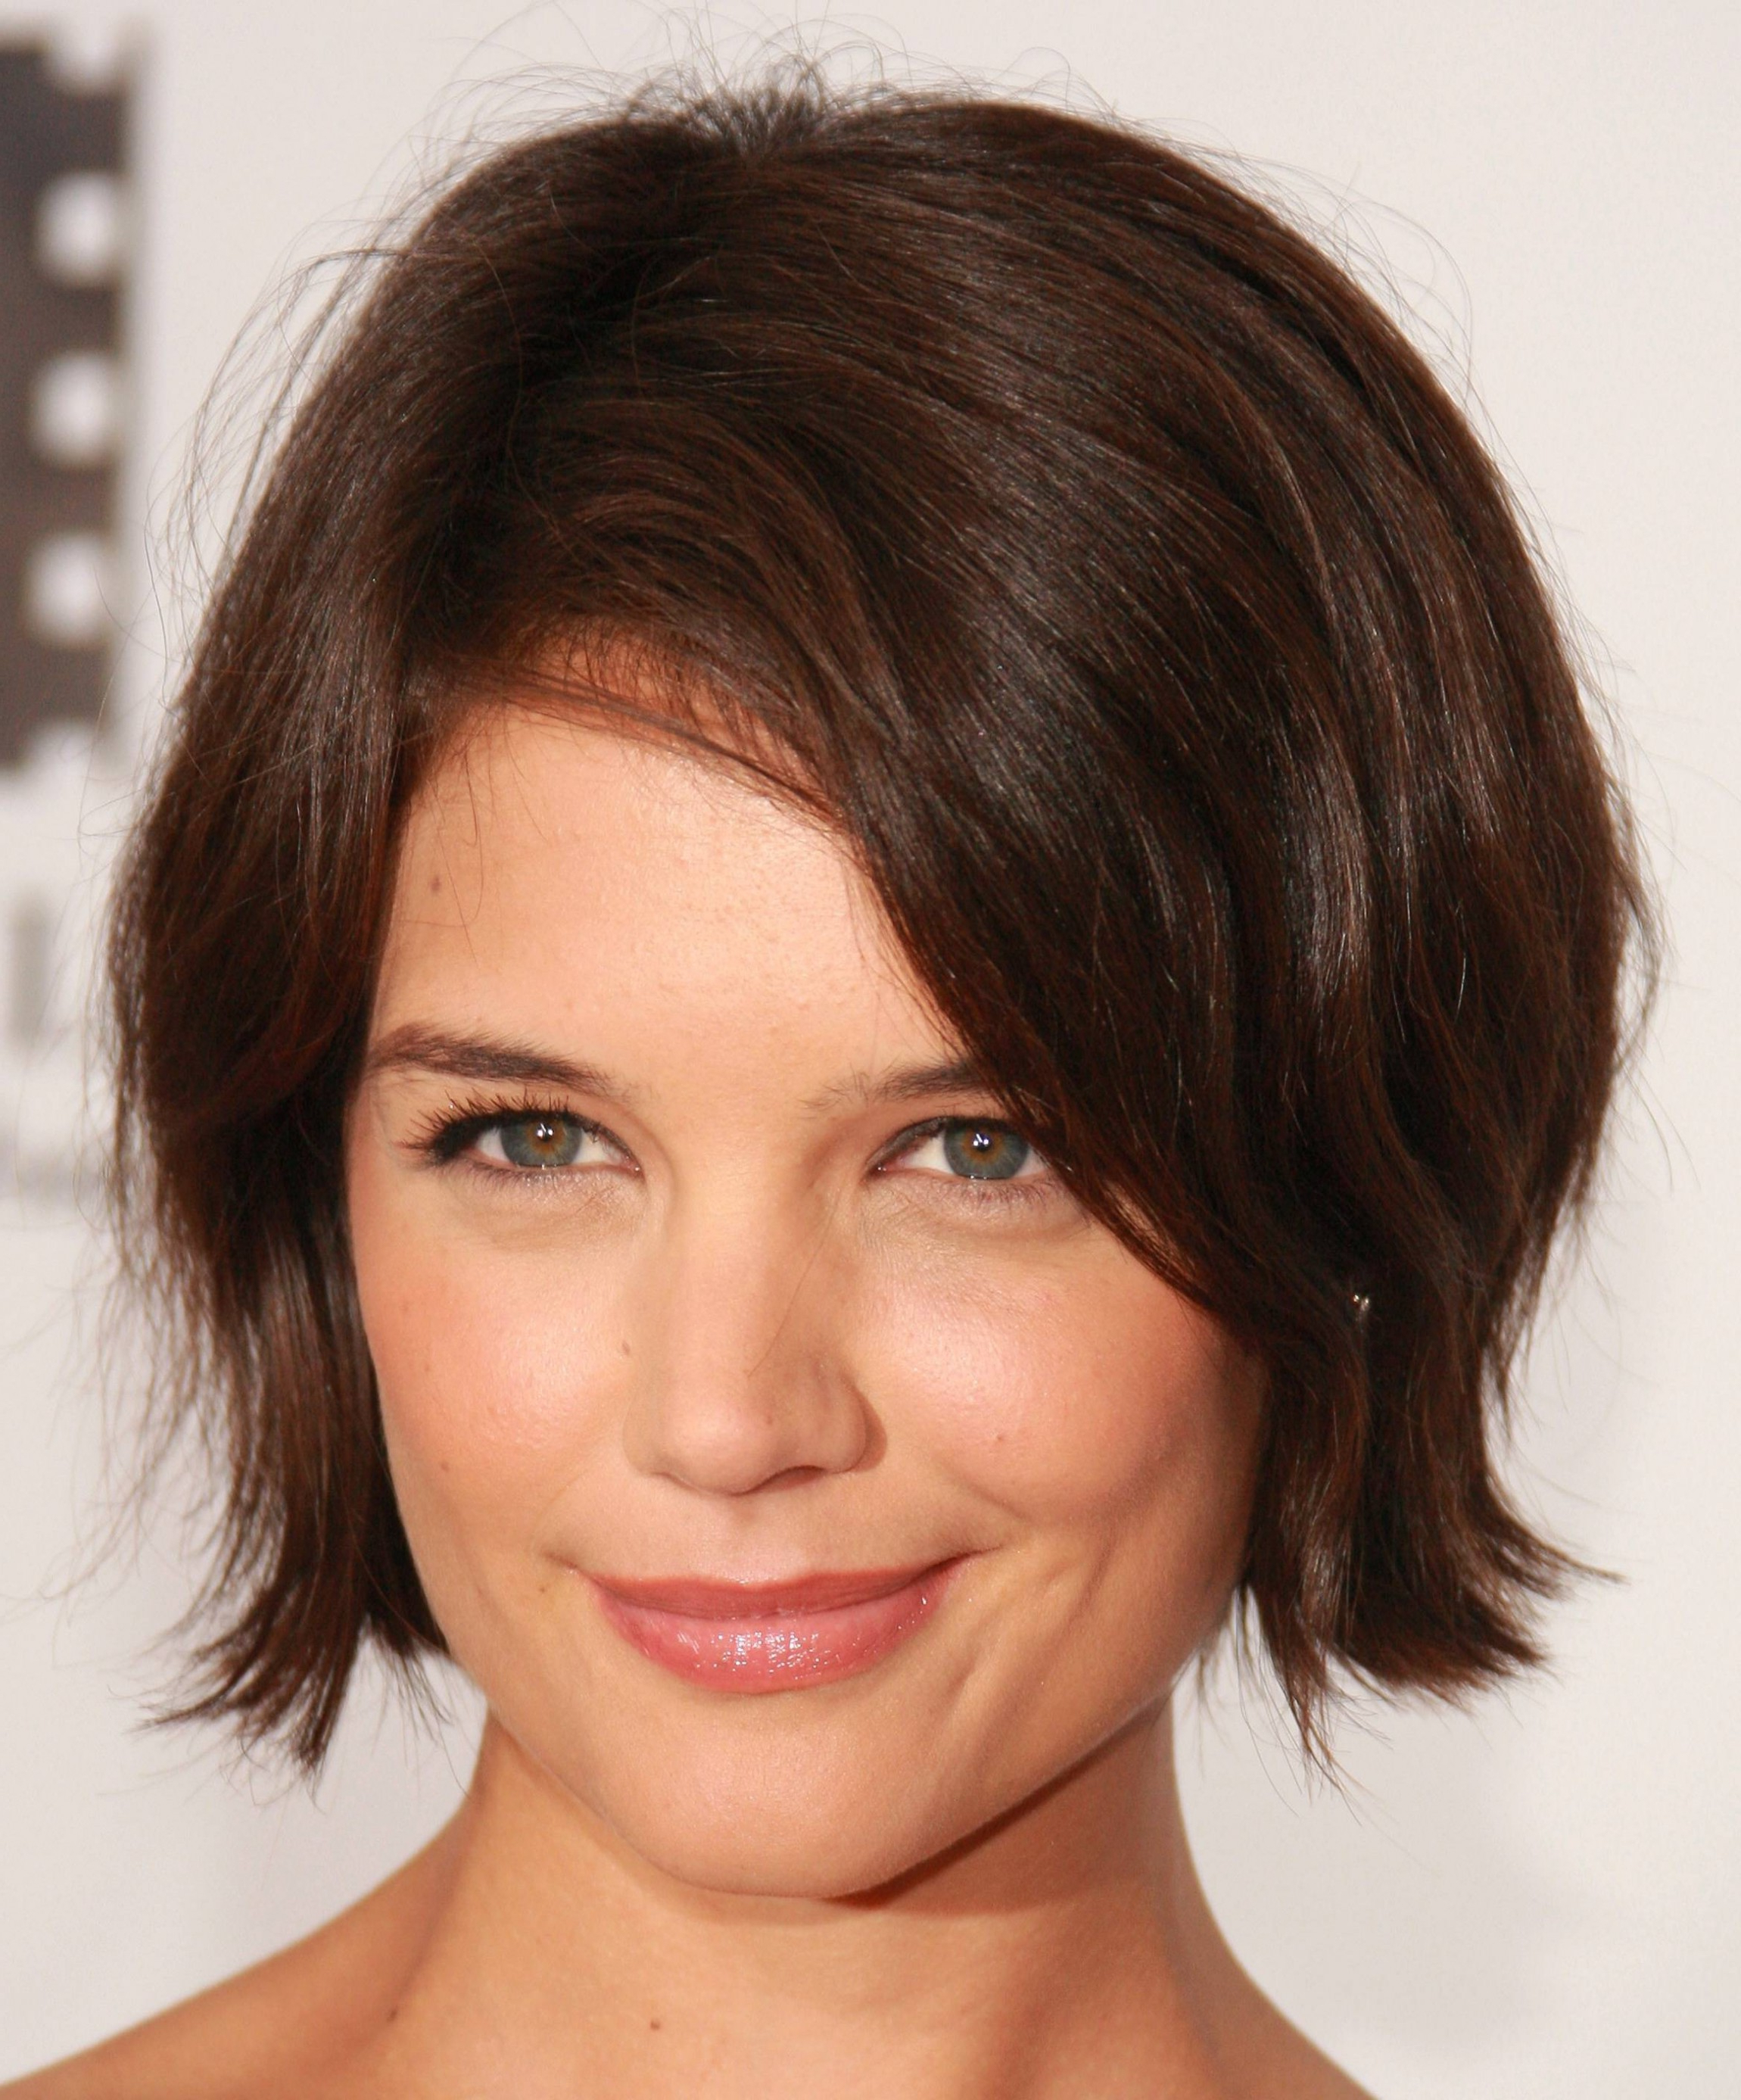 Best Short Hairstyles – Cute Hair Cut Guide For Round Face Shape Pertaining To Medium To Short Haircuts For Thick Hair (View 21 of 25)